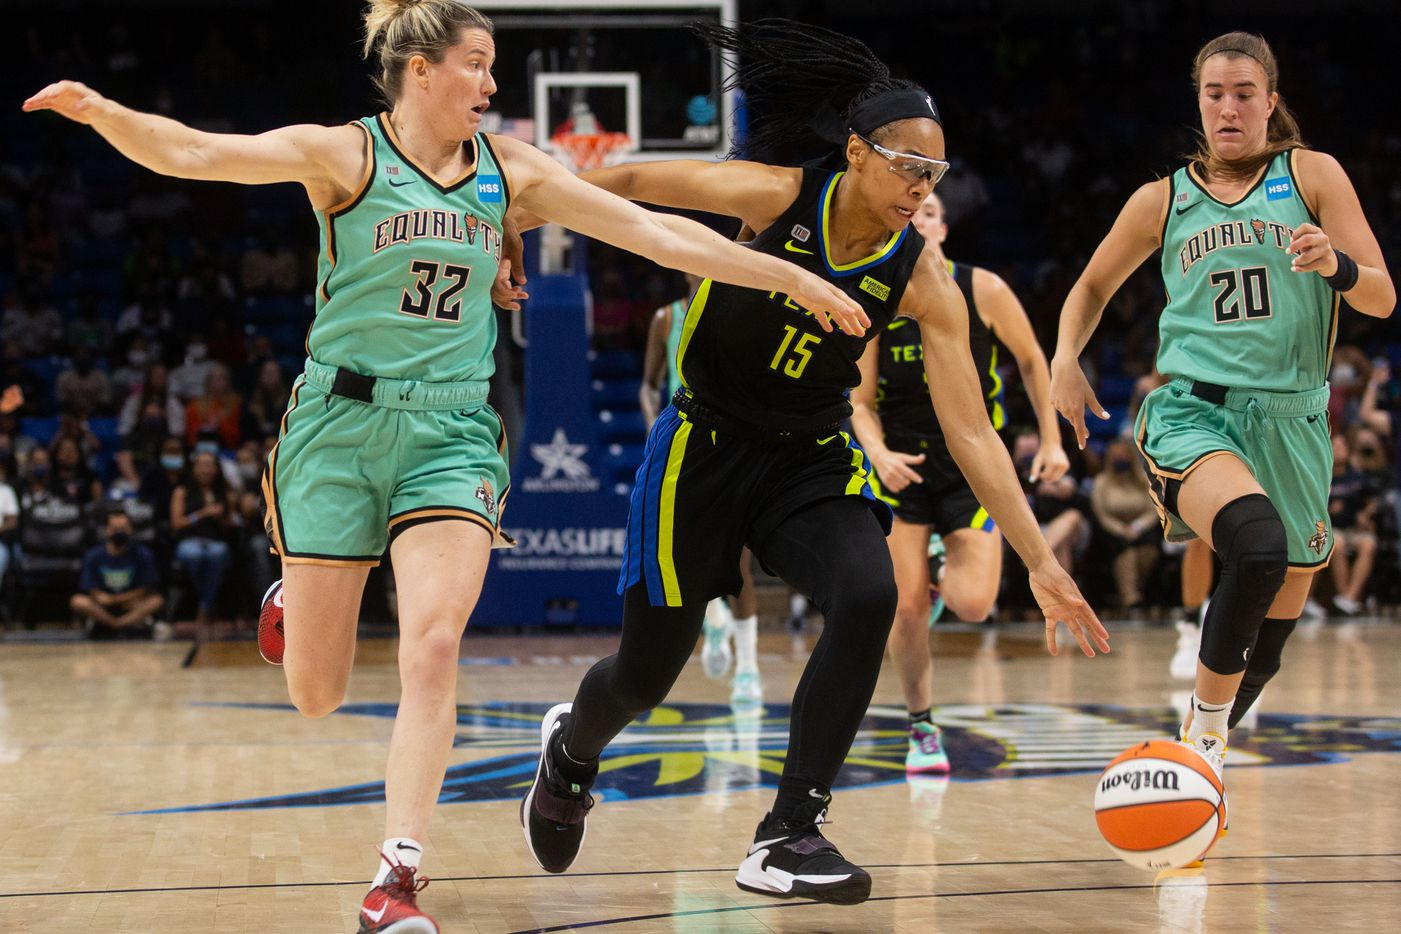 Dallas Wings guard Allisha Gray (15) pushes against NY Liberty NY Liberty guard Sami Whitcomb (32) to the ball down the court at College Park Center in Arlington, TX on September 11, 2021.  (Shelby Tauber/Special Contributor)